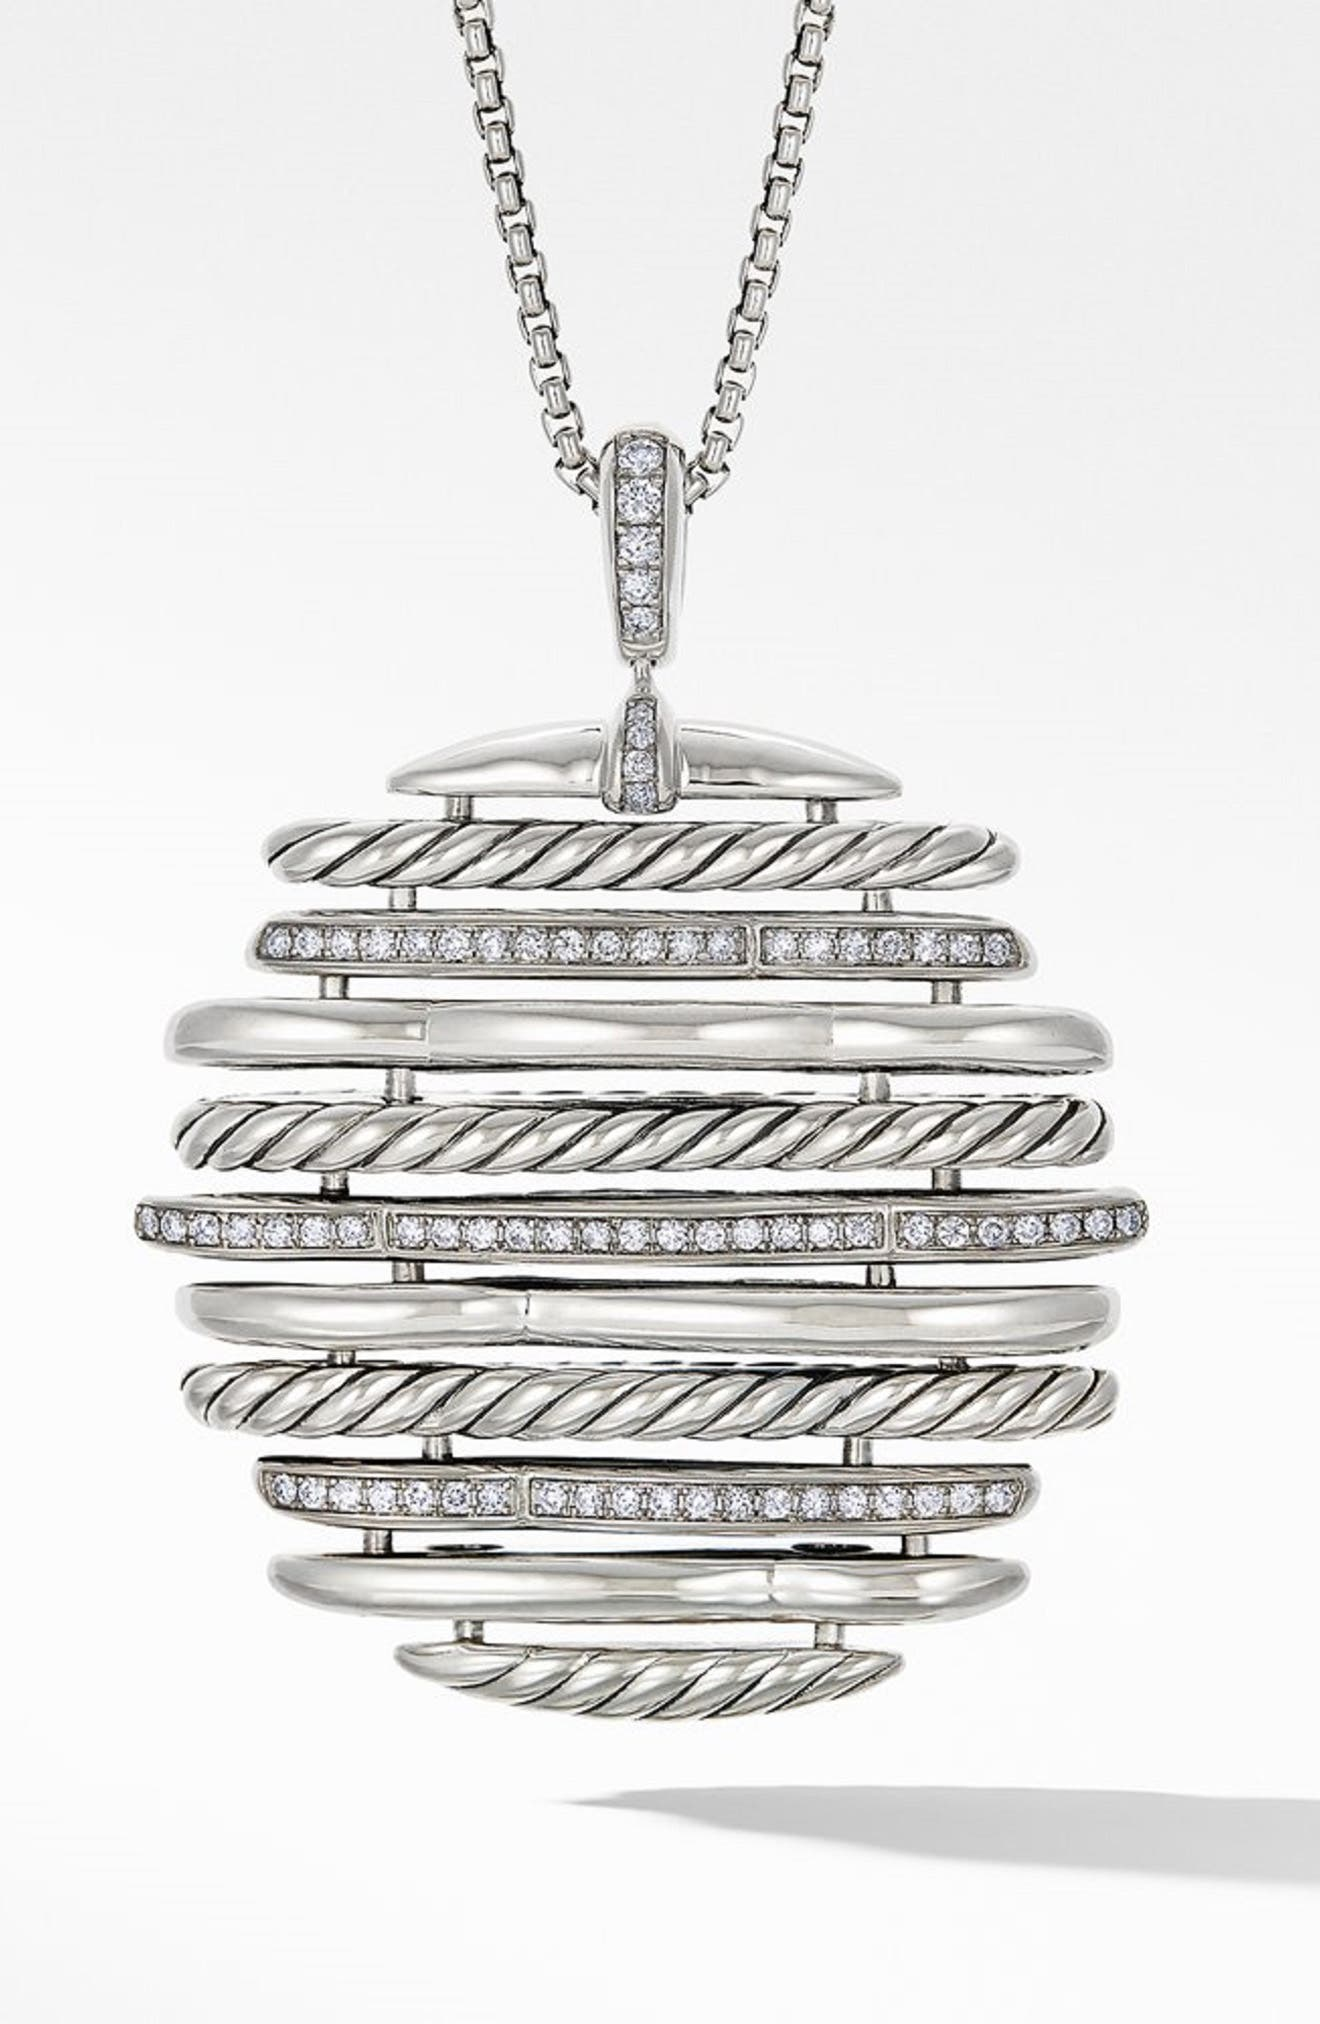 Tides Pendant Necklace with Diamonds,                         Main,                         color, STERLING SILVER/ DIAMOND